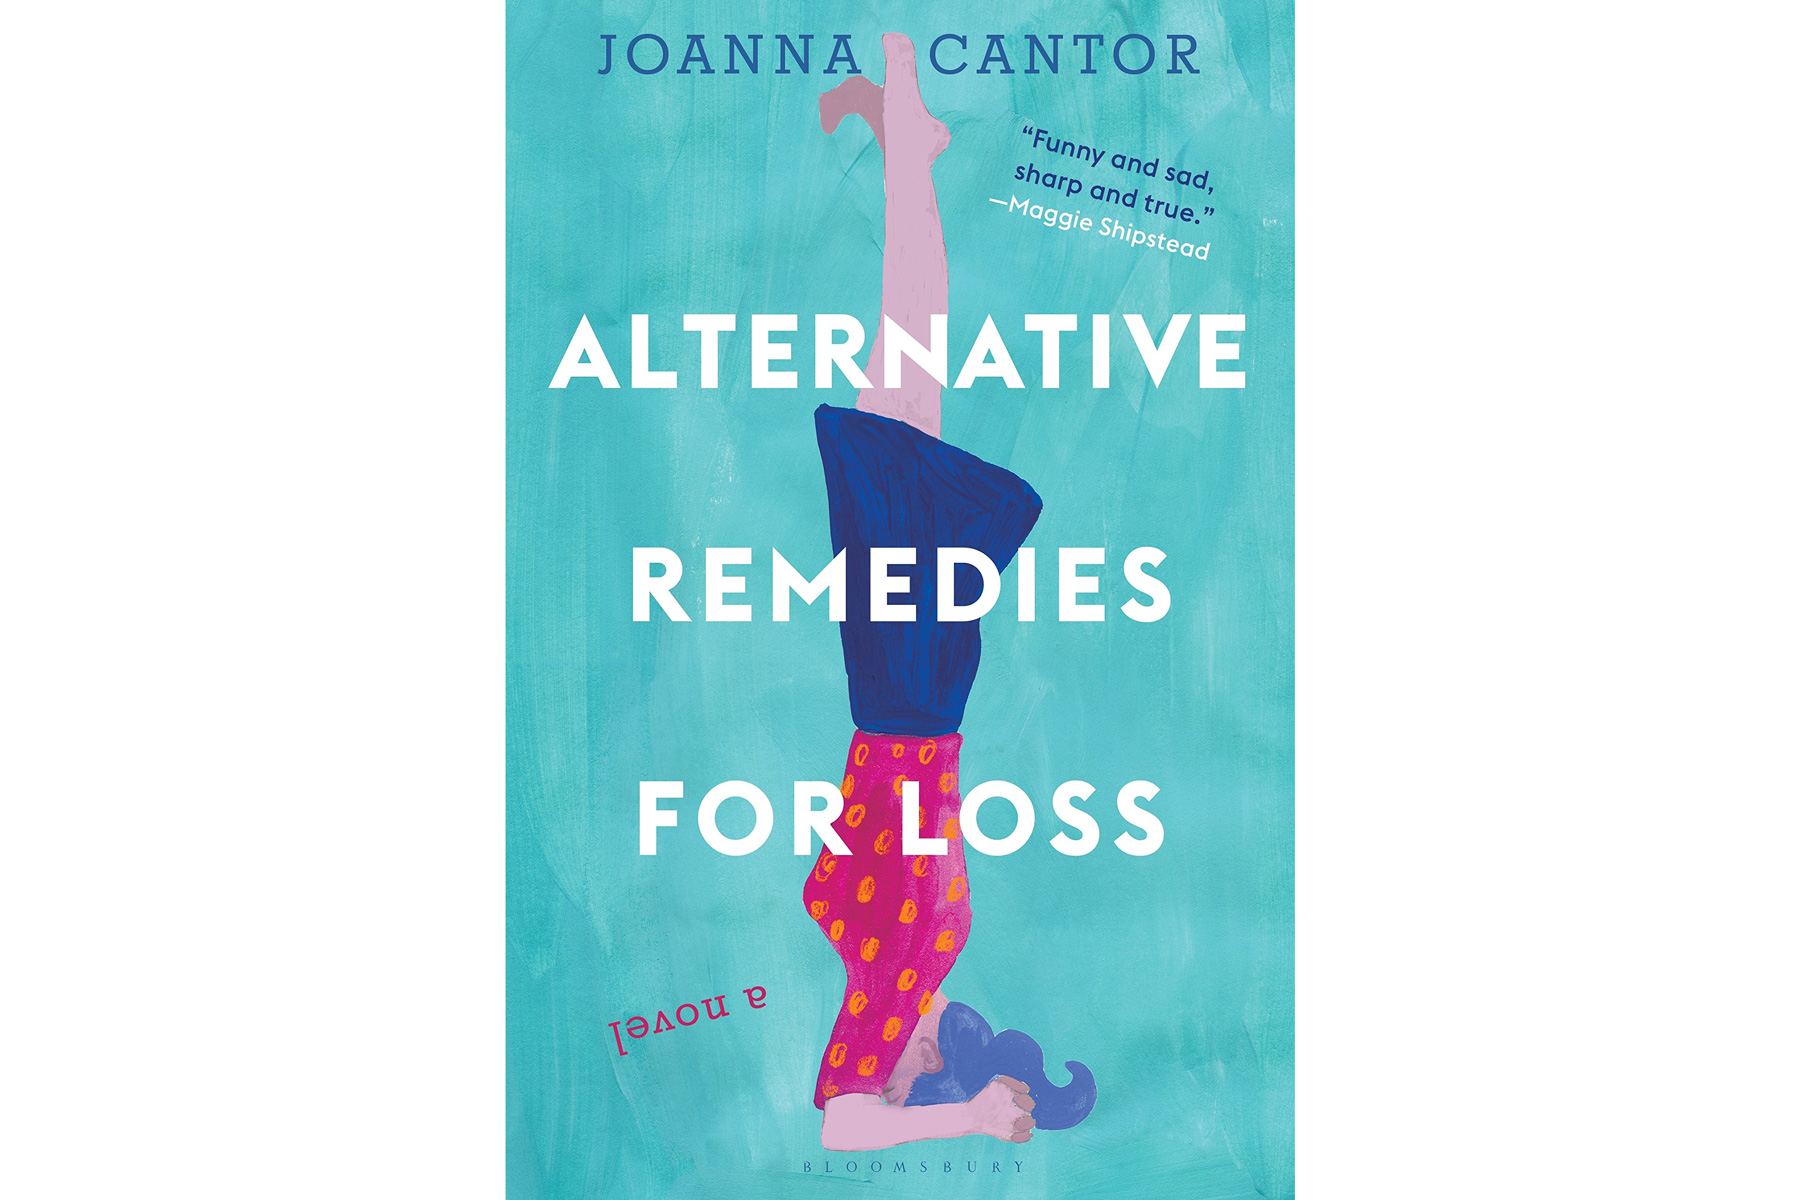 Alternative Remedies for Loss, by Joanna Cantor